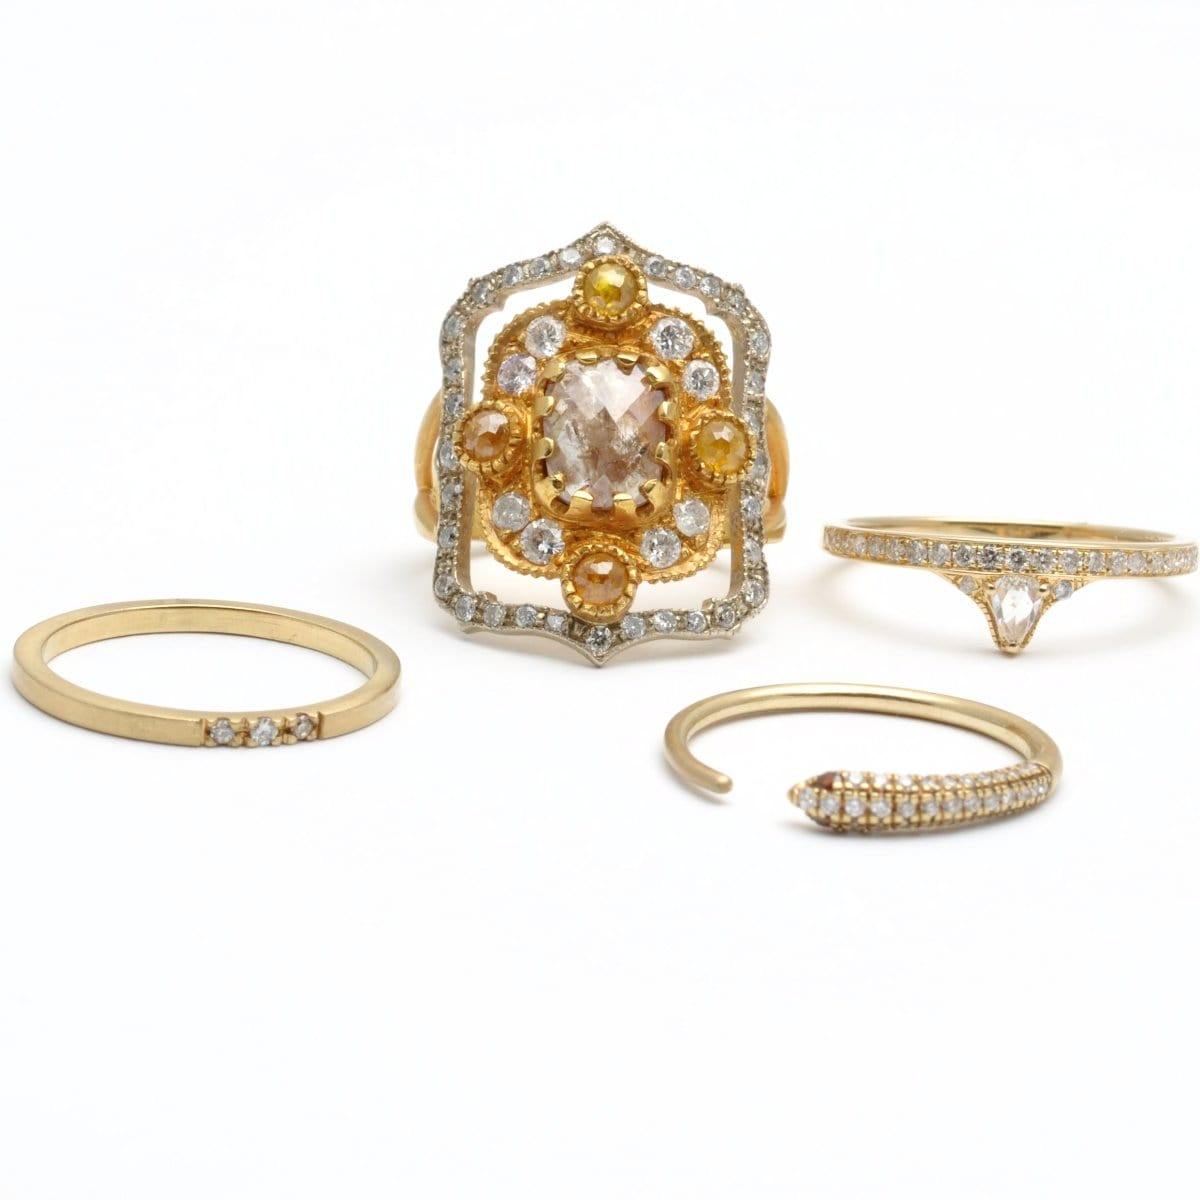 Gold and diamond cocktail ring and stacking rings